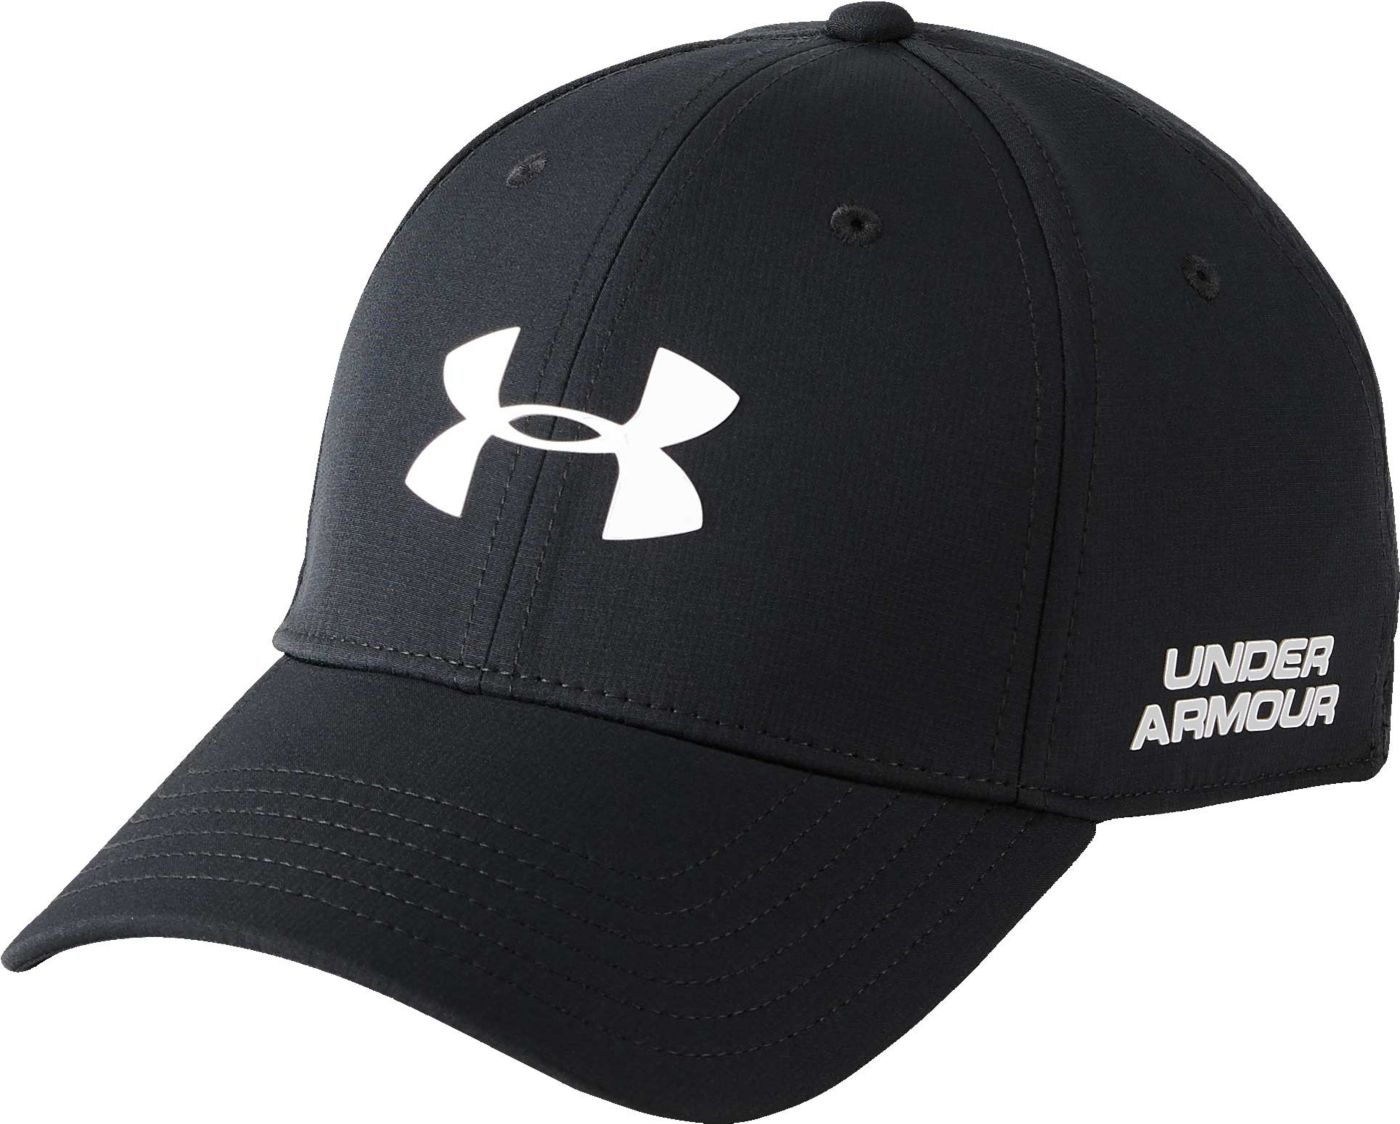 Under Armour Headline 2.0 Hat